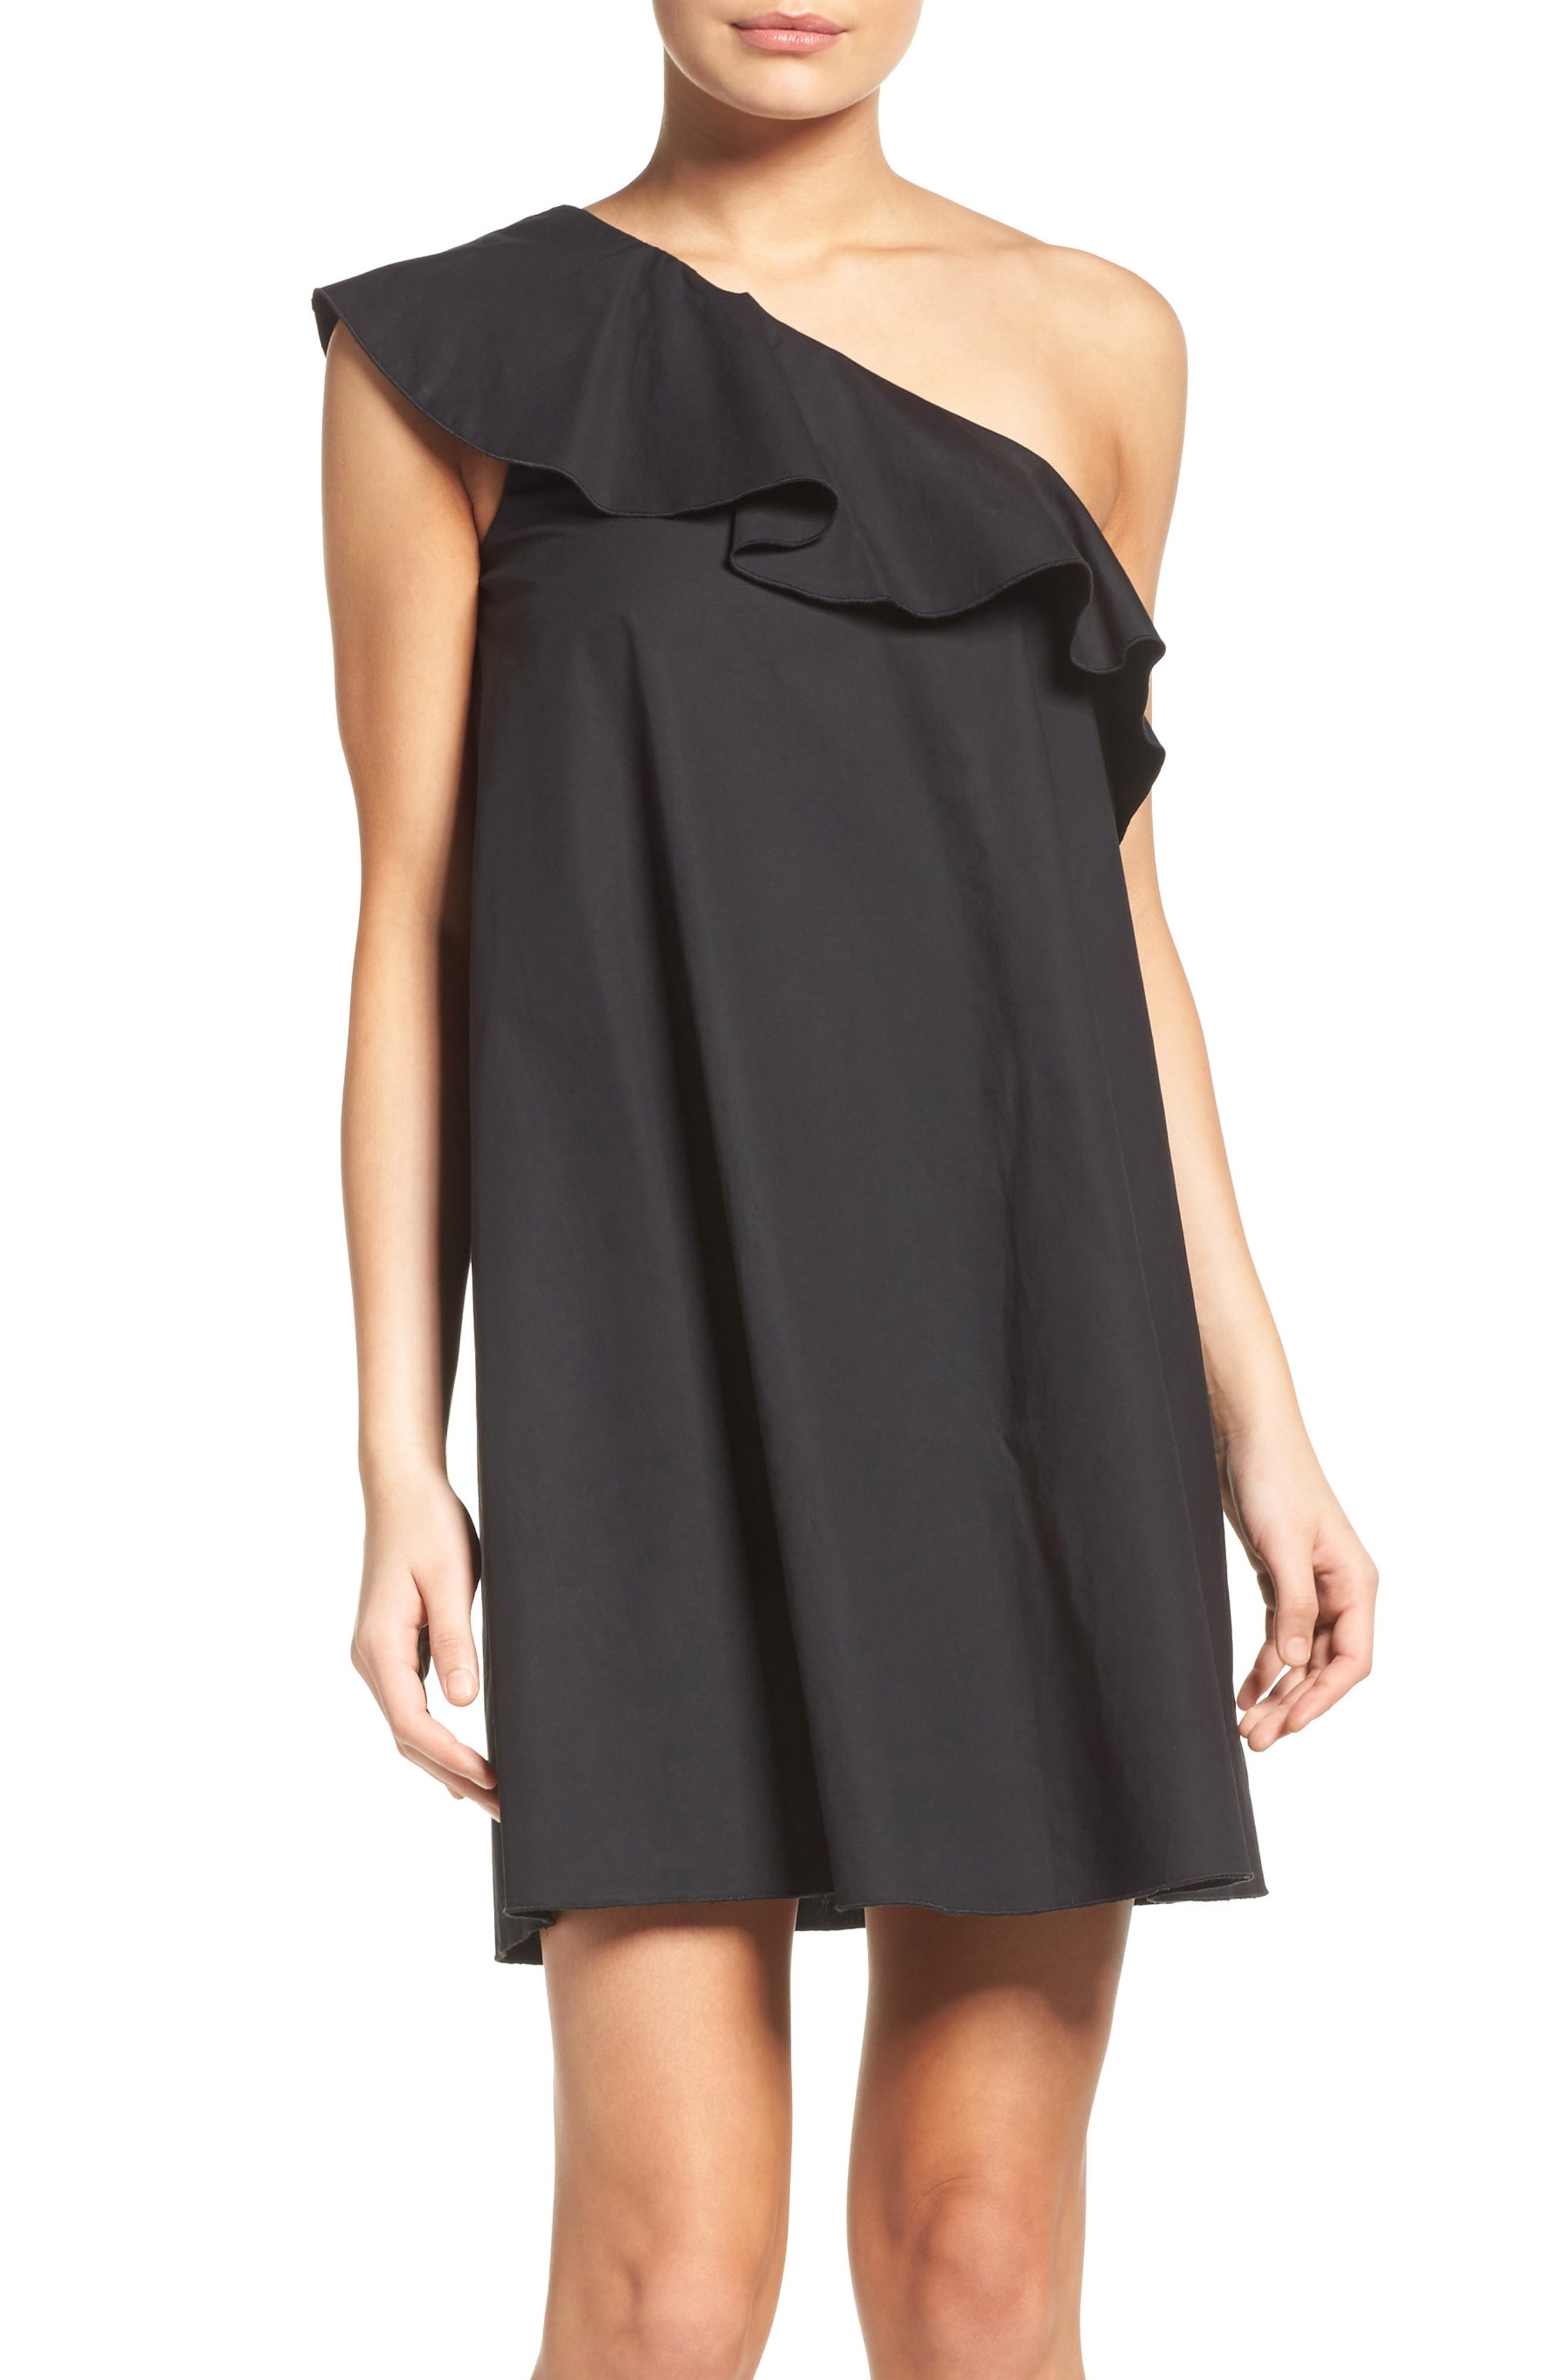 NSR One-Shoulder Ruffle Dress